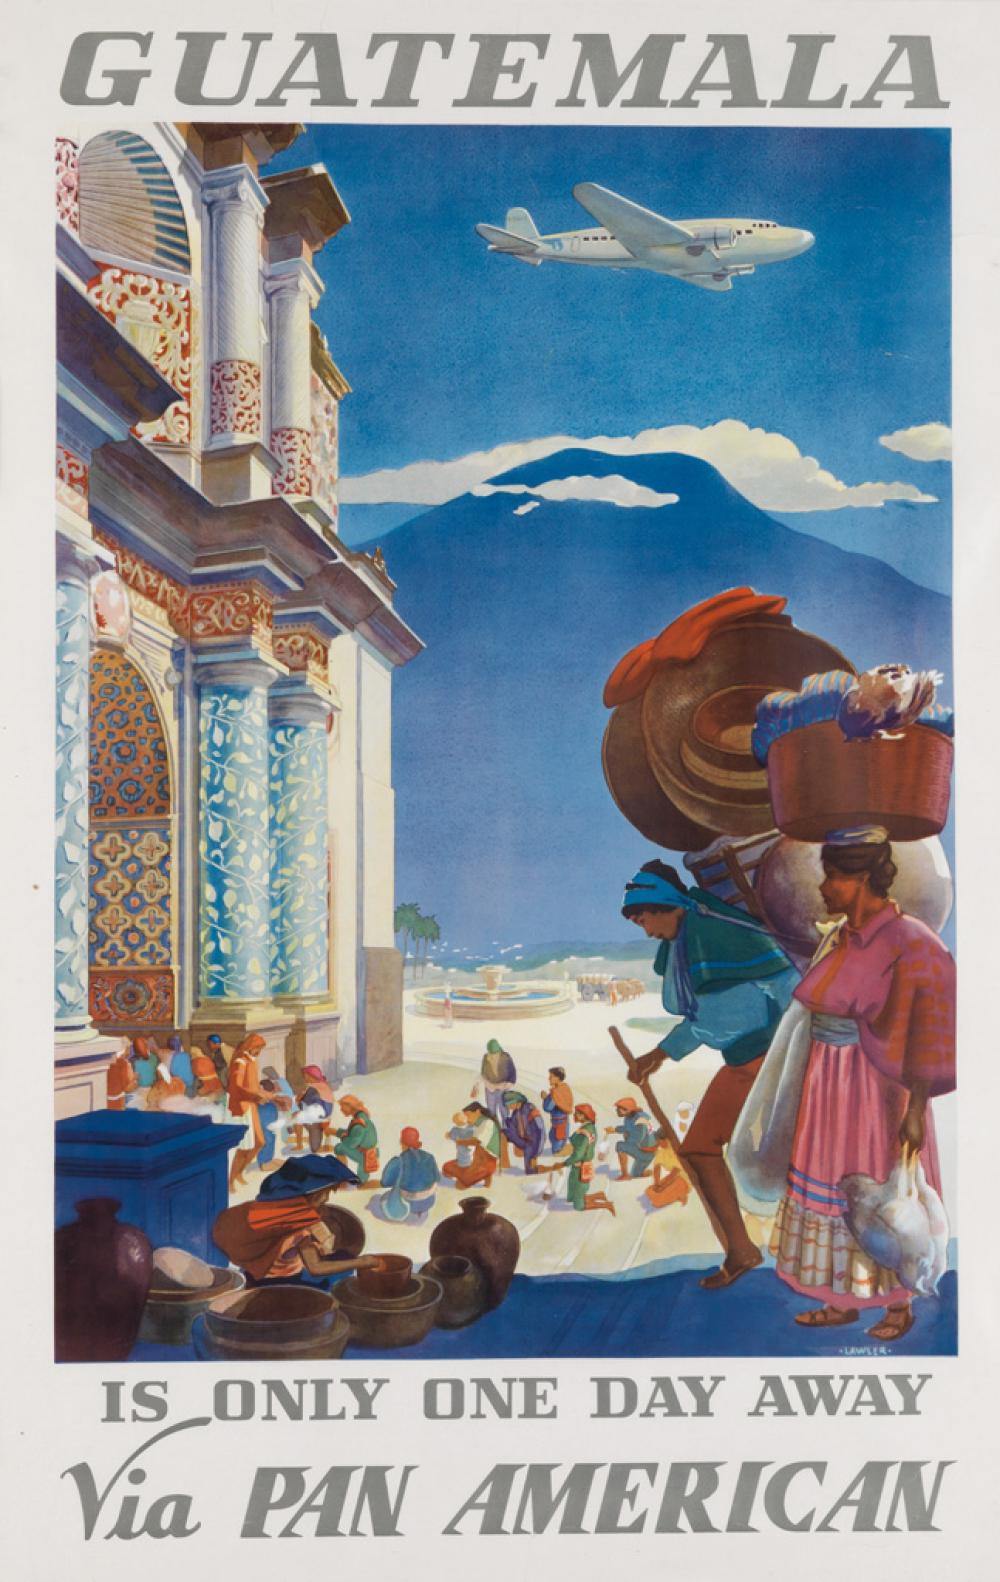 PAUL GEORGE LAWLER (DATES UNKNOWN). GUATEMALA / IS ONLY ONE DAY AWAY VIA PAN AMERICAN. 1938. 40x25 inches, 102x65 cm.